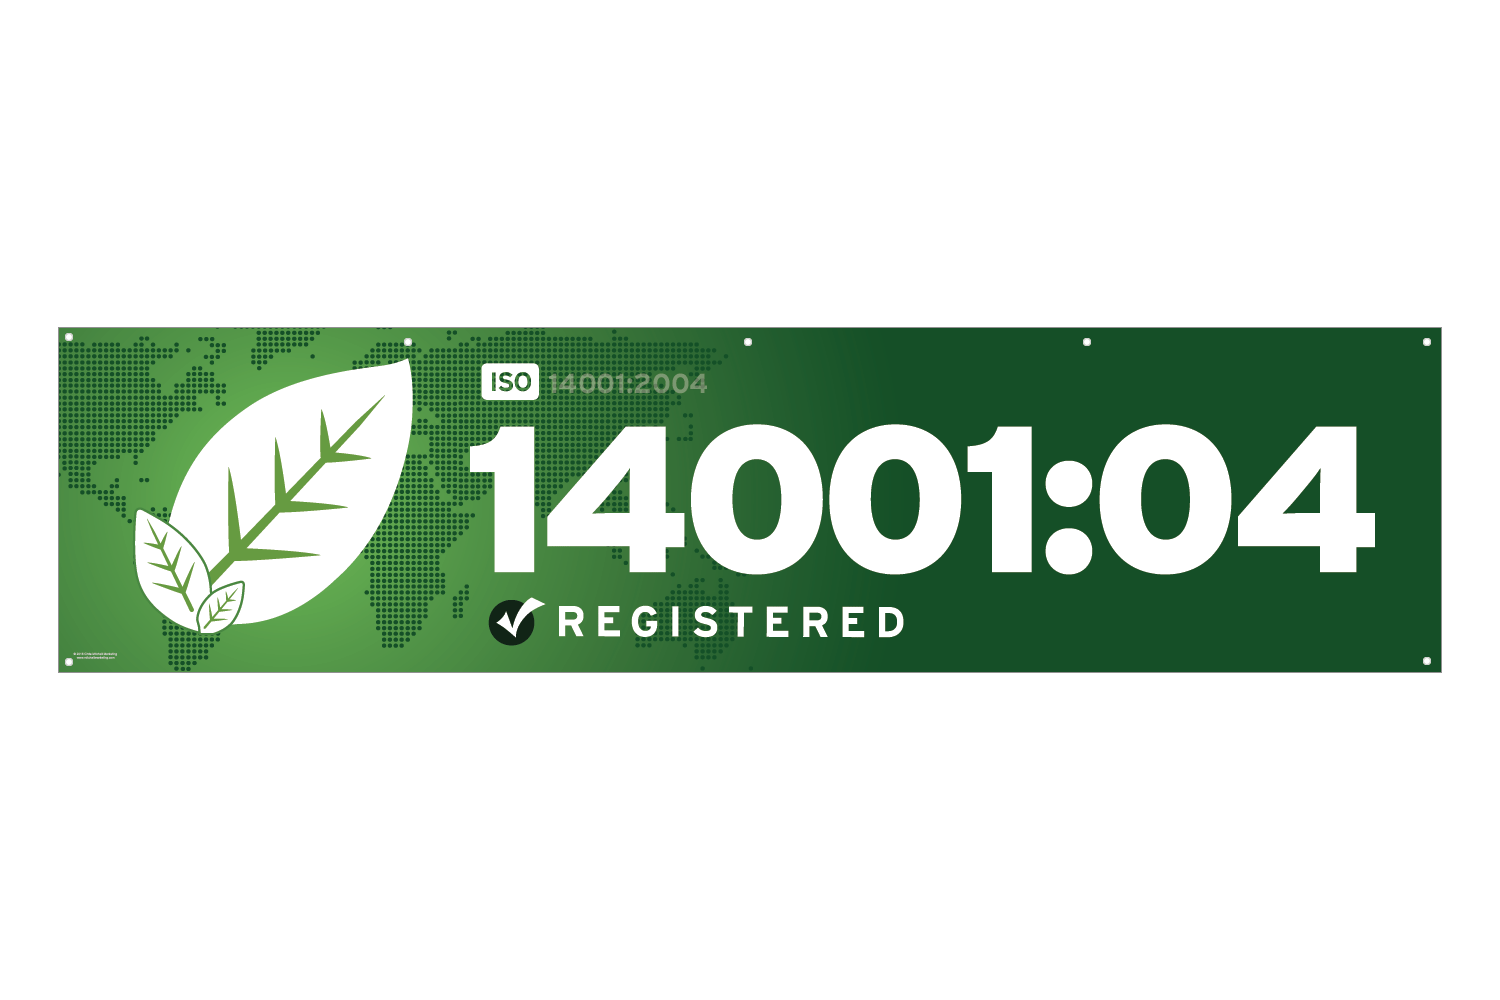 ISO 14001 2004 Banner